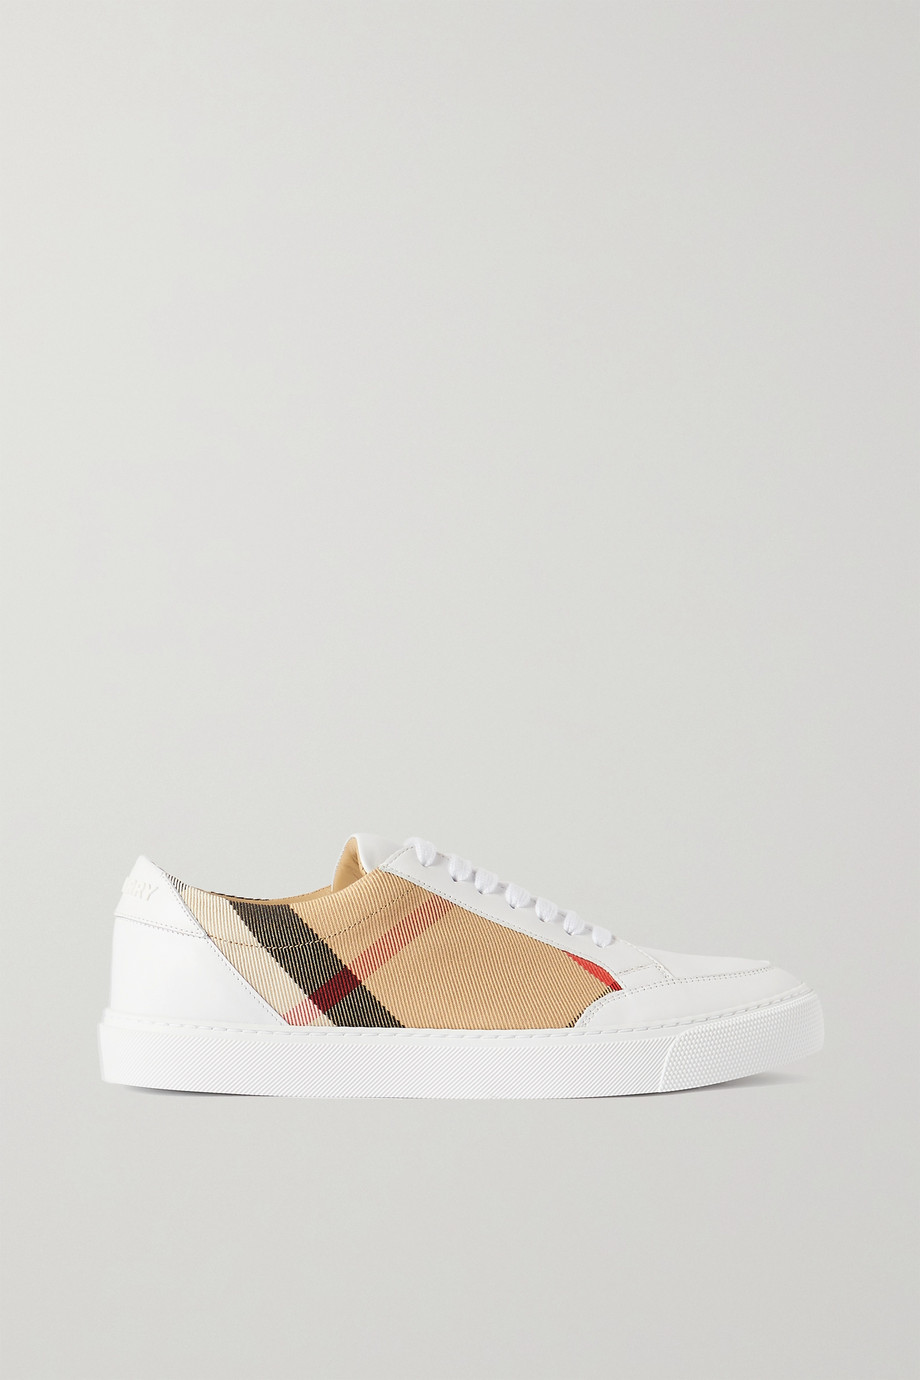 BURBERRY Checked canvas and leather sneakers